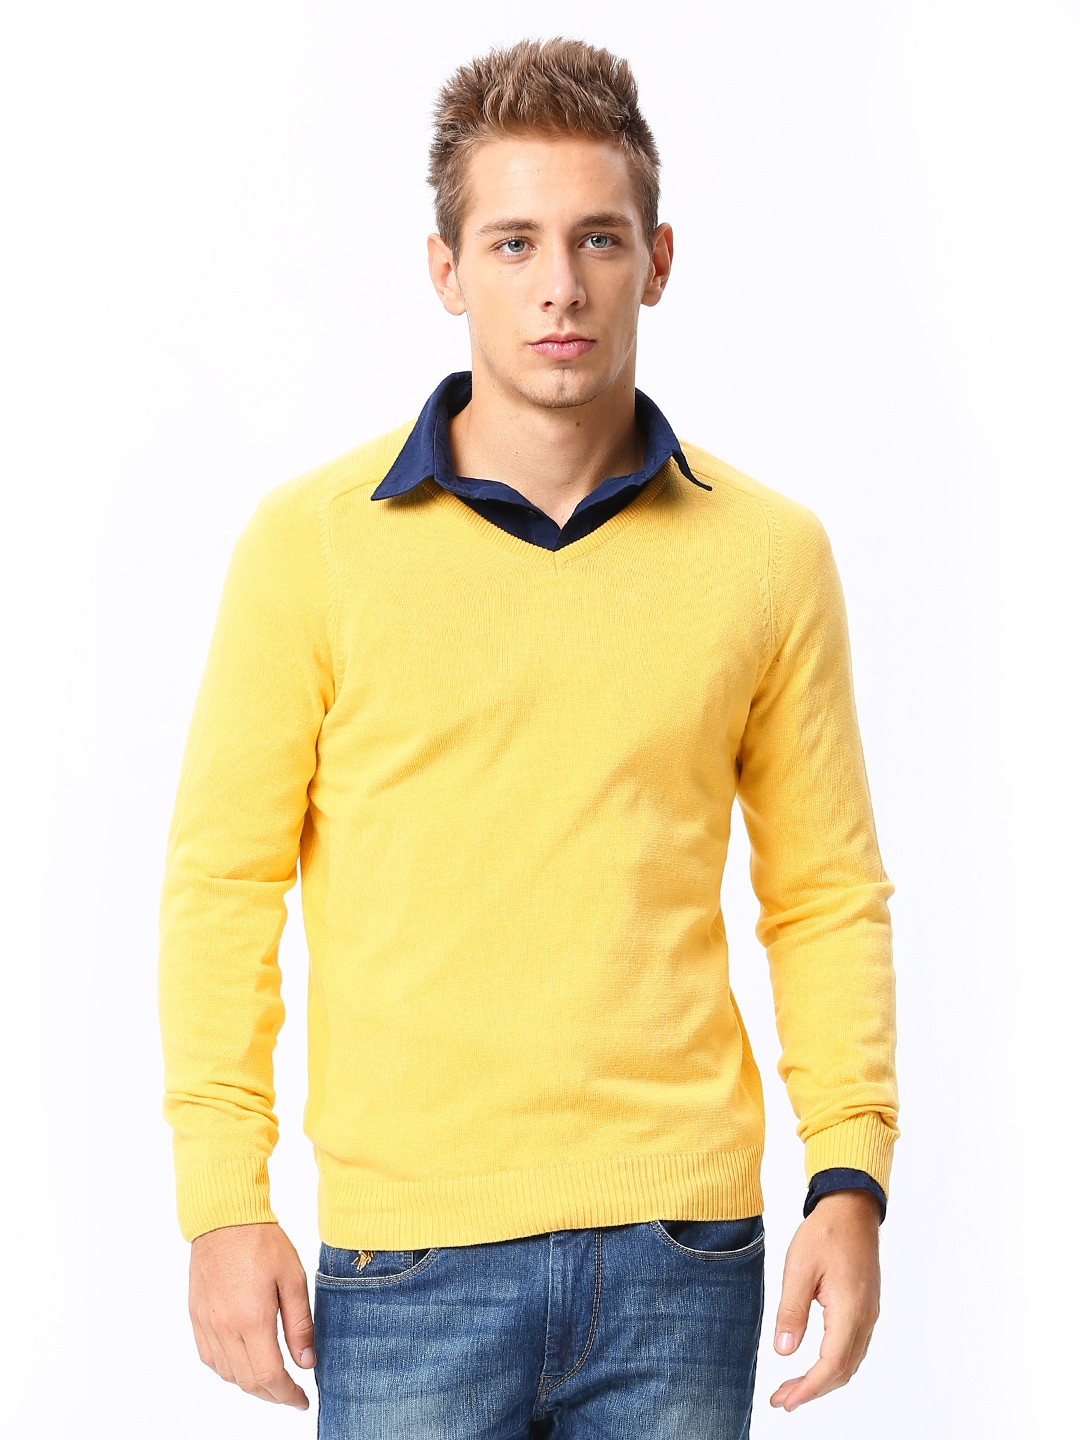 Show your style smarts in this honey yellow turtleneck! With a close fit, long sleeves, and a fine, soft knit with ribbed edges, this versatile sweater .